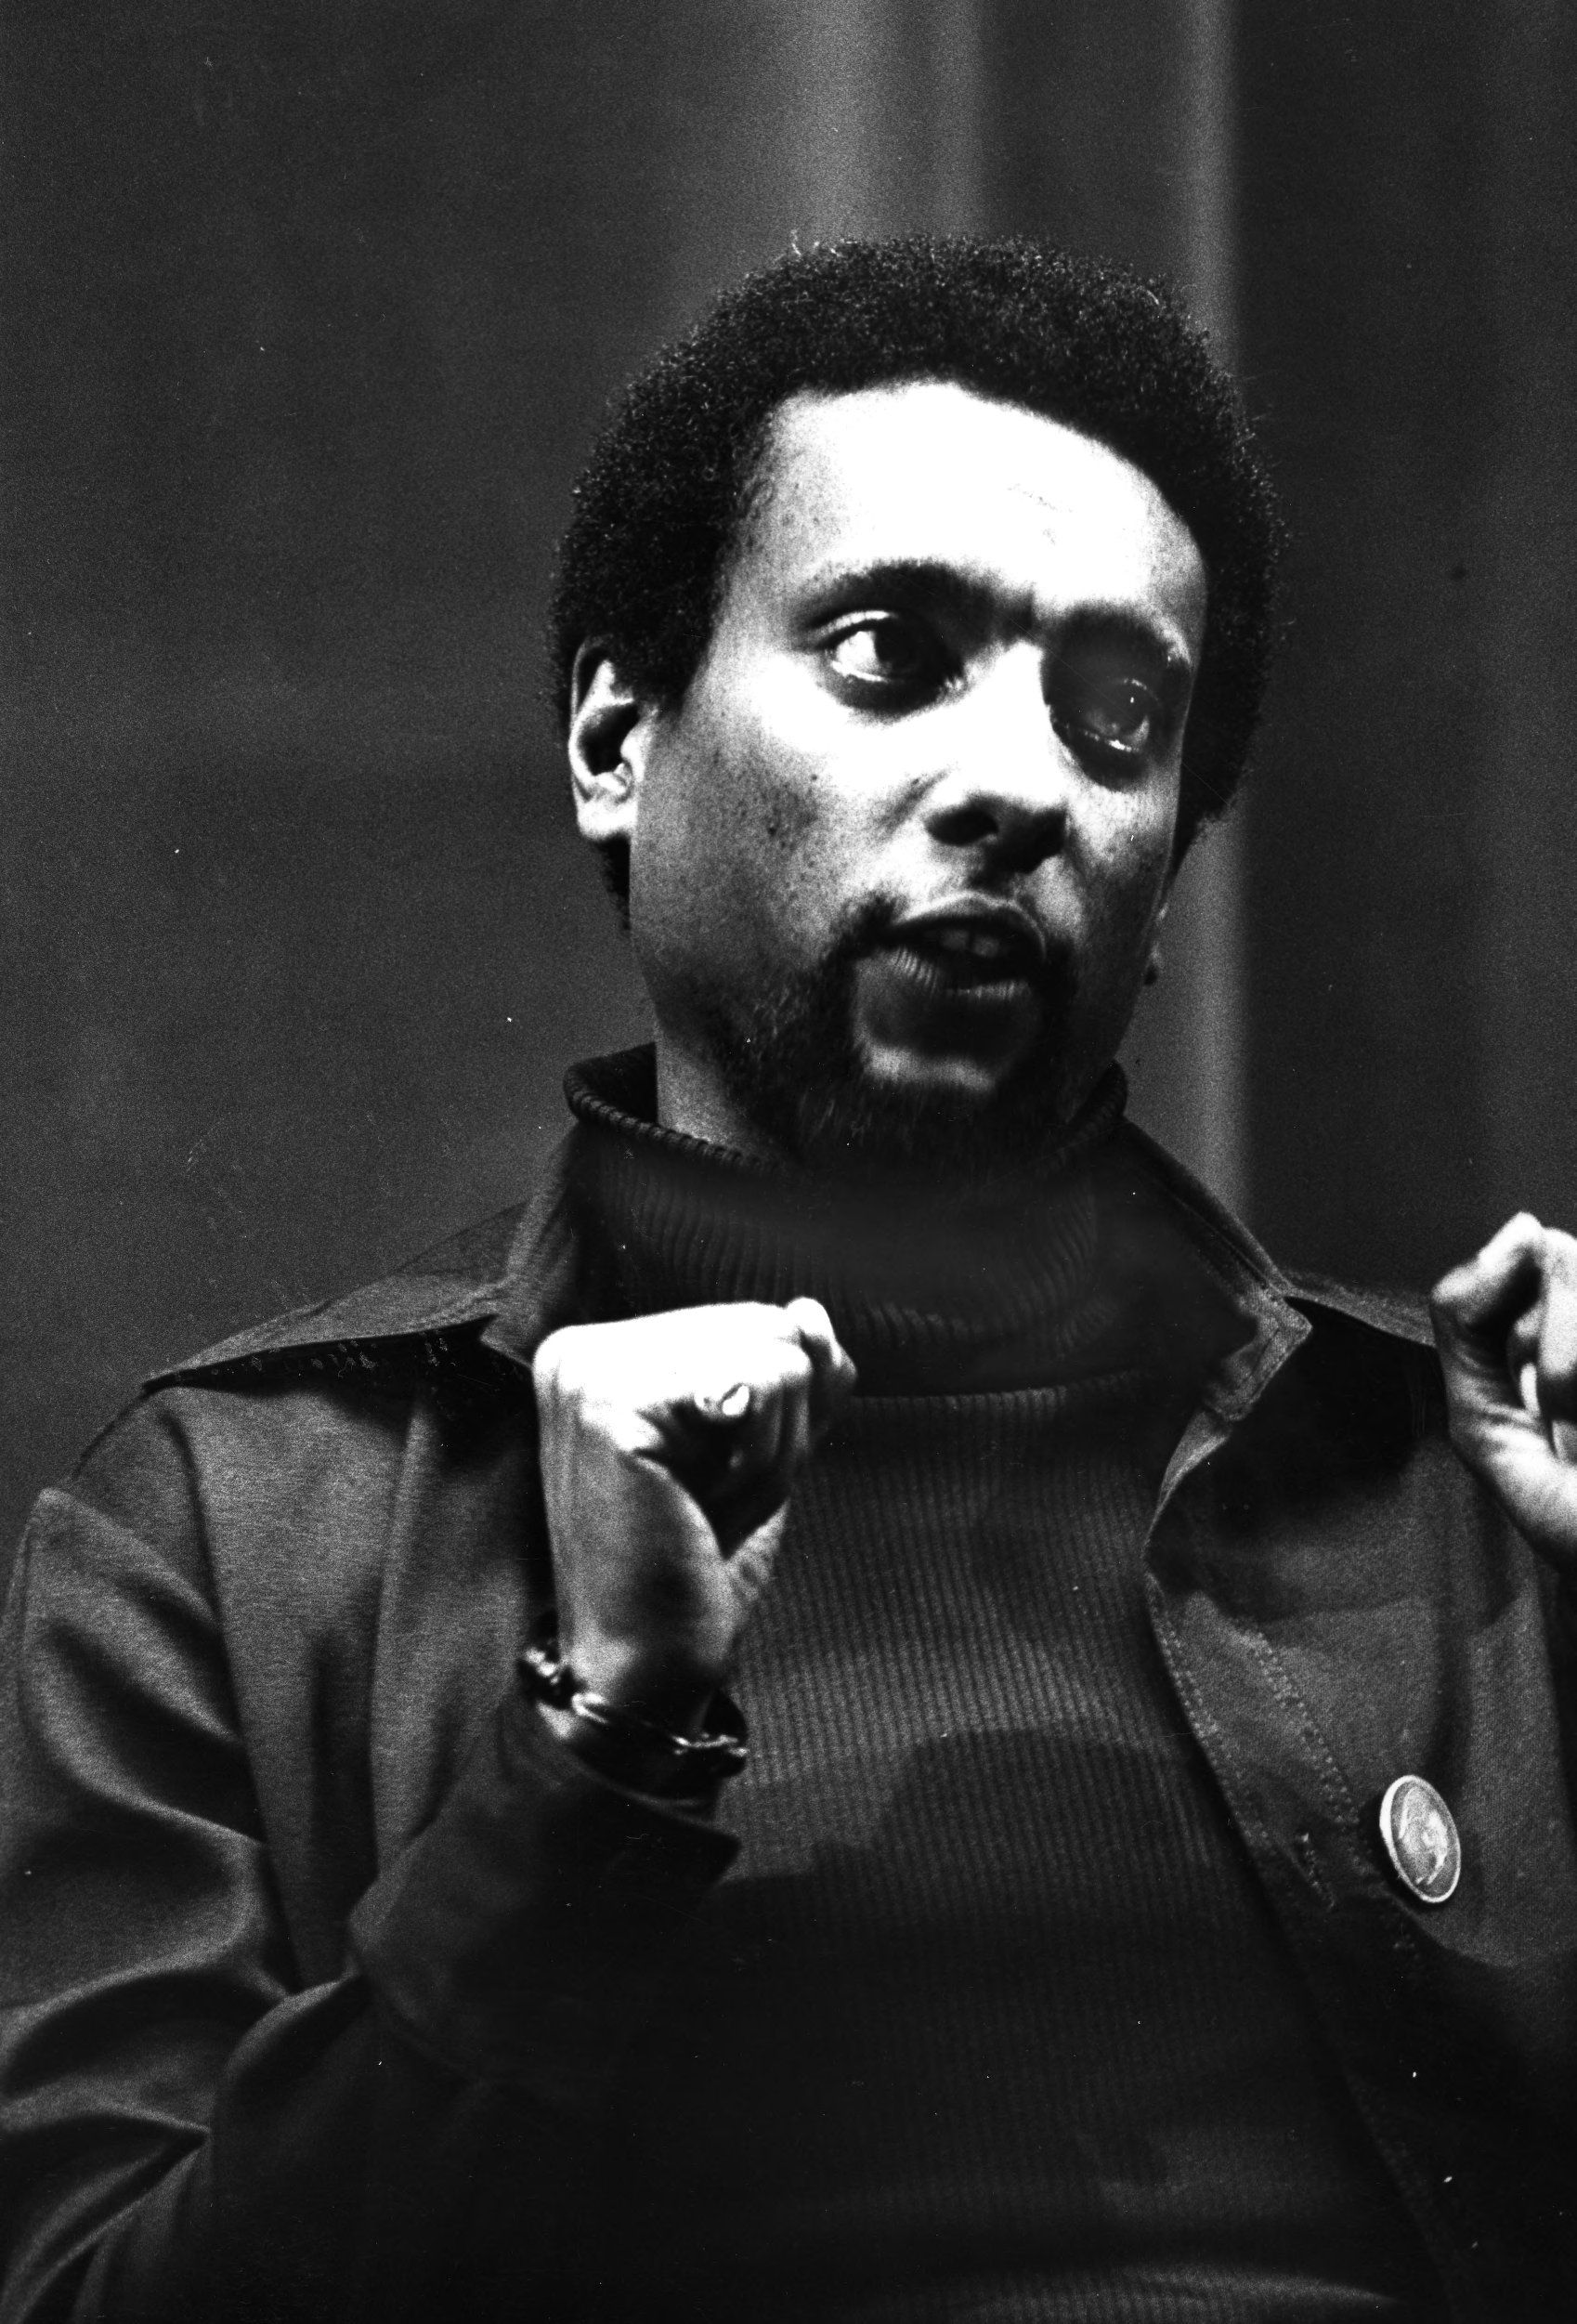 The Black Panther Party for Self - Defense (BPP) Stokley Carmichael / Kwame Ture